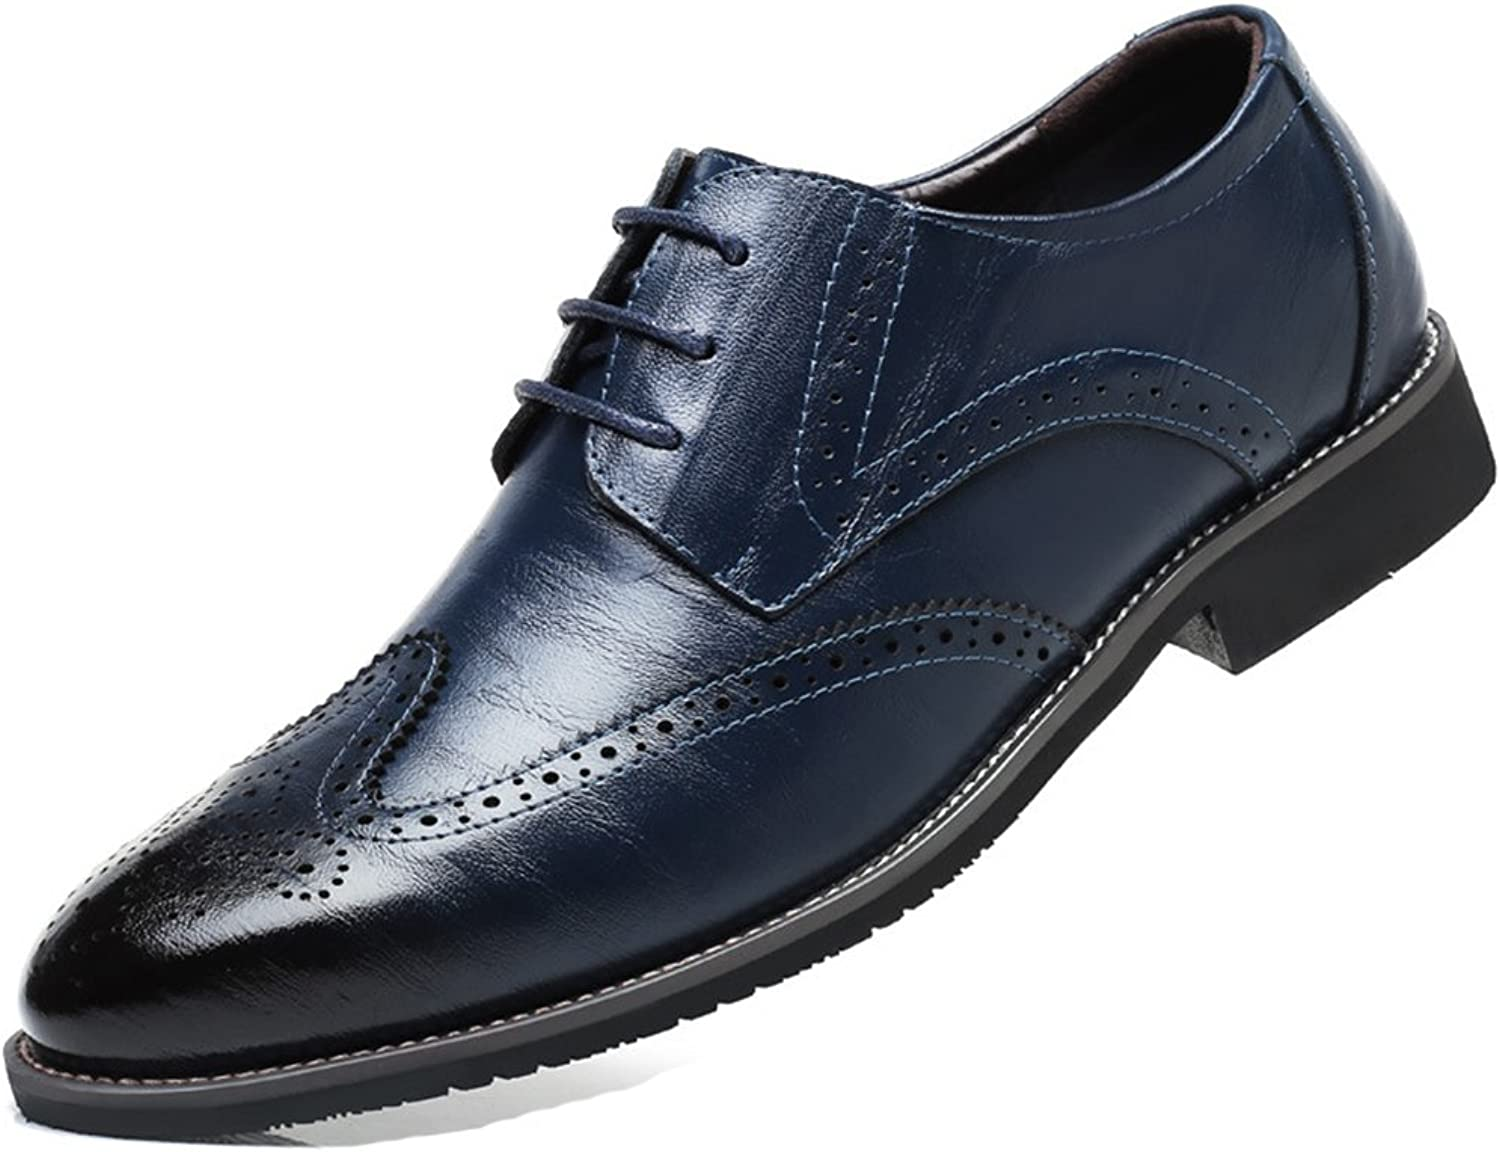 Giles Jones Mens Oxford shoes - Chukka Heel Lace Up Breathable Wing Tip Brogue Dress shoes bluee